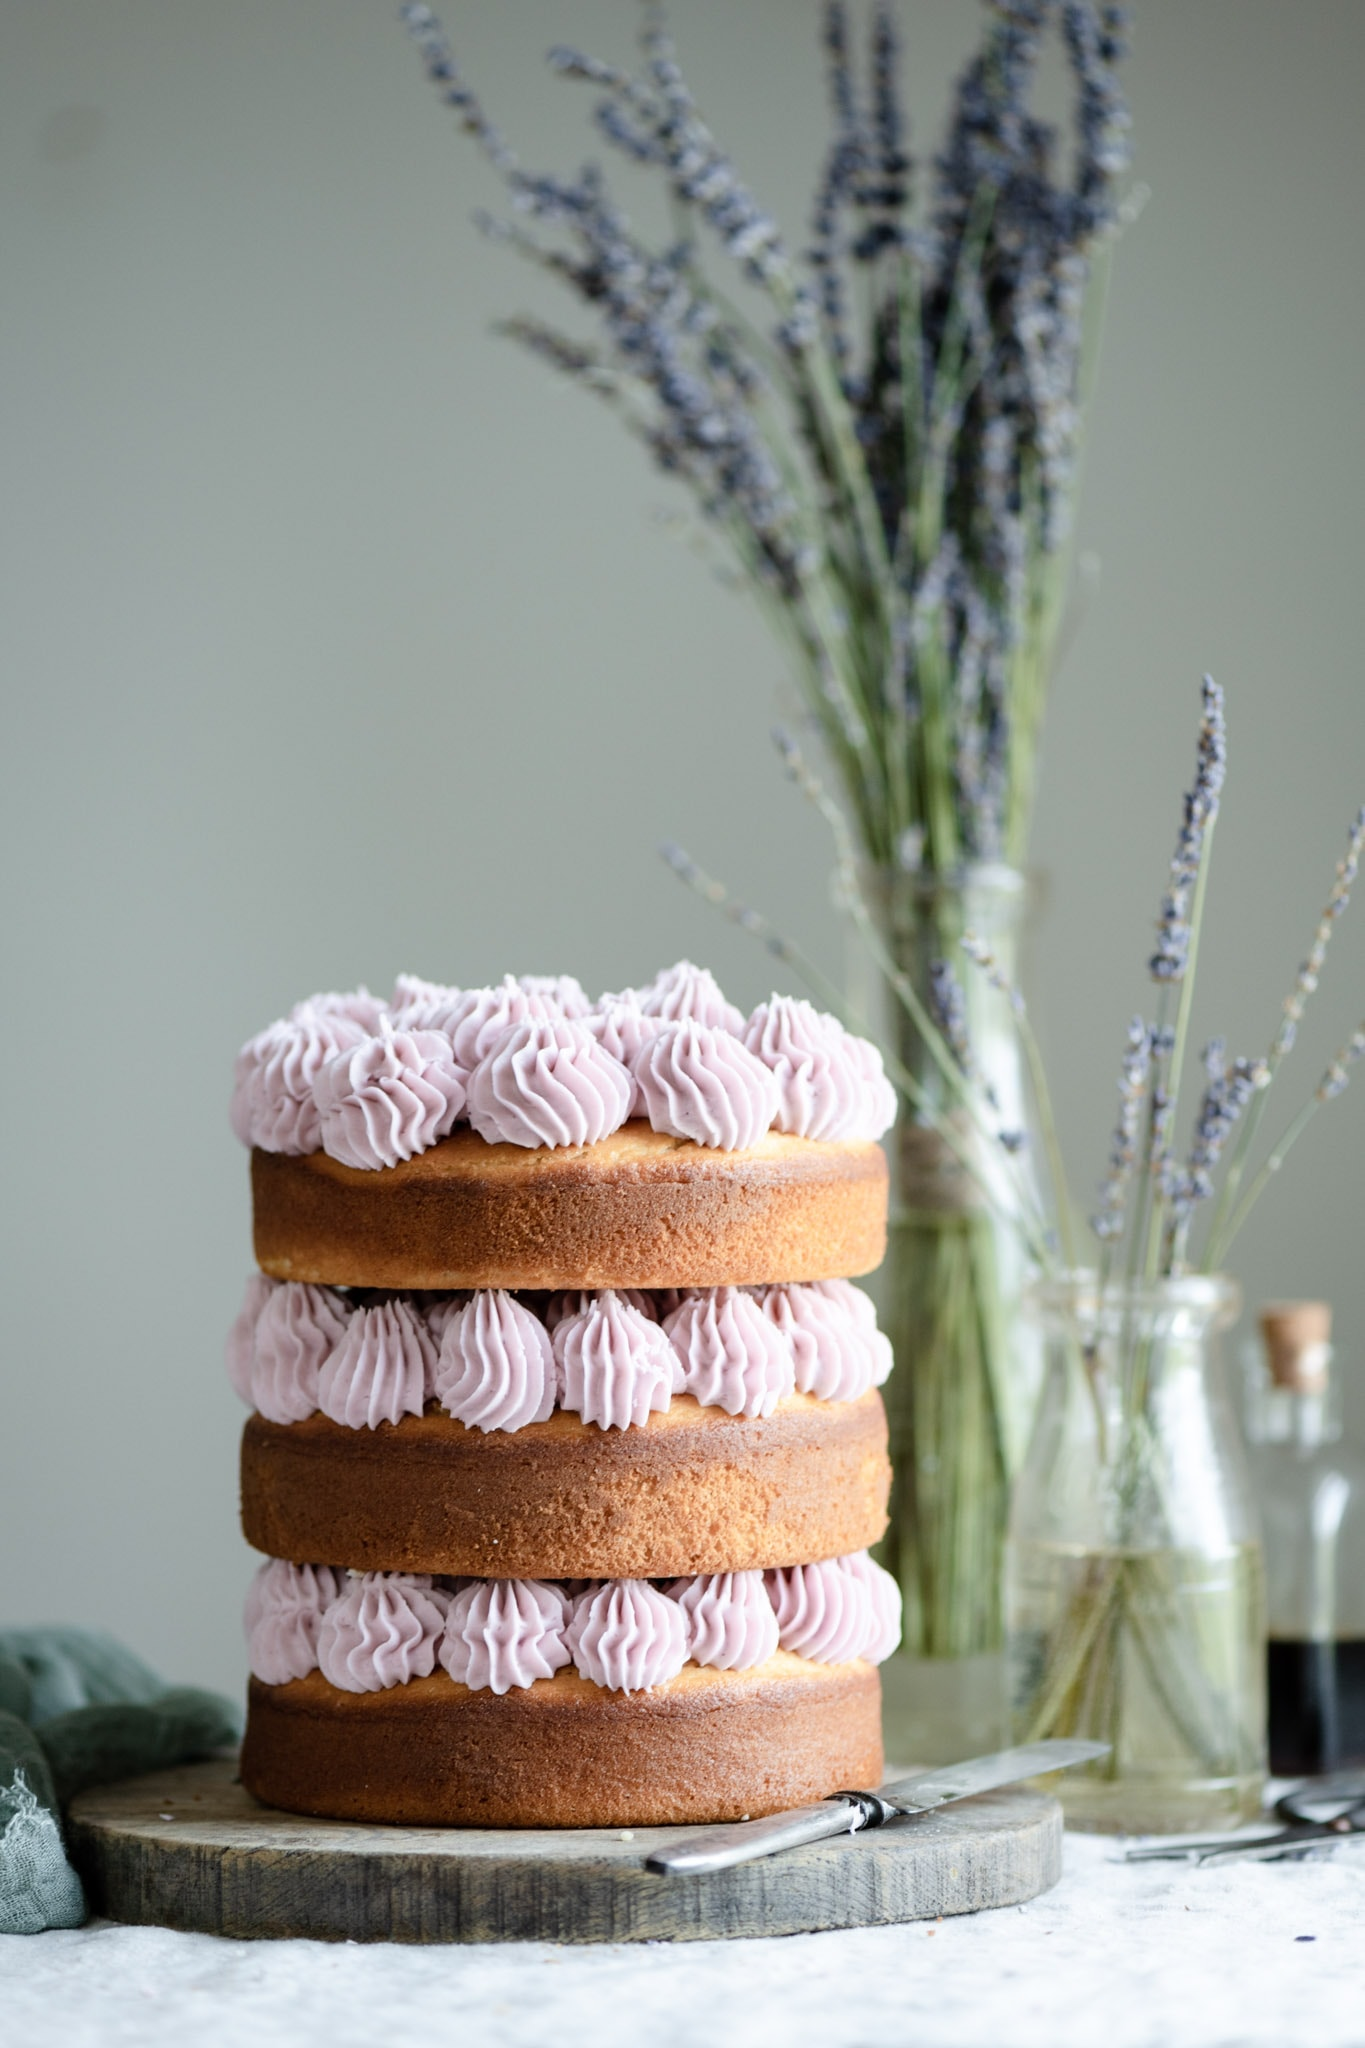 Layered vanilla cake with purple frosting.